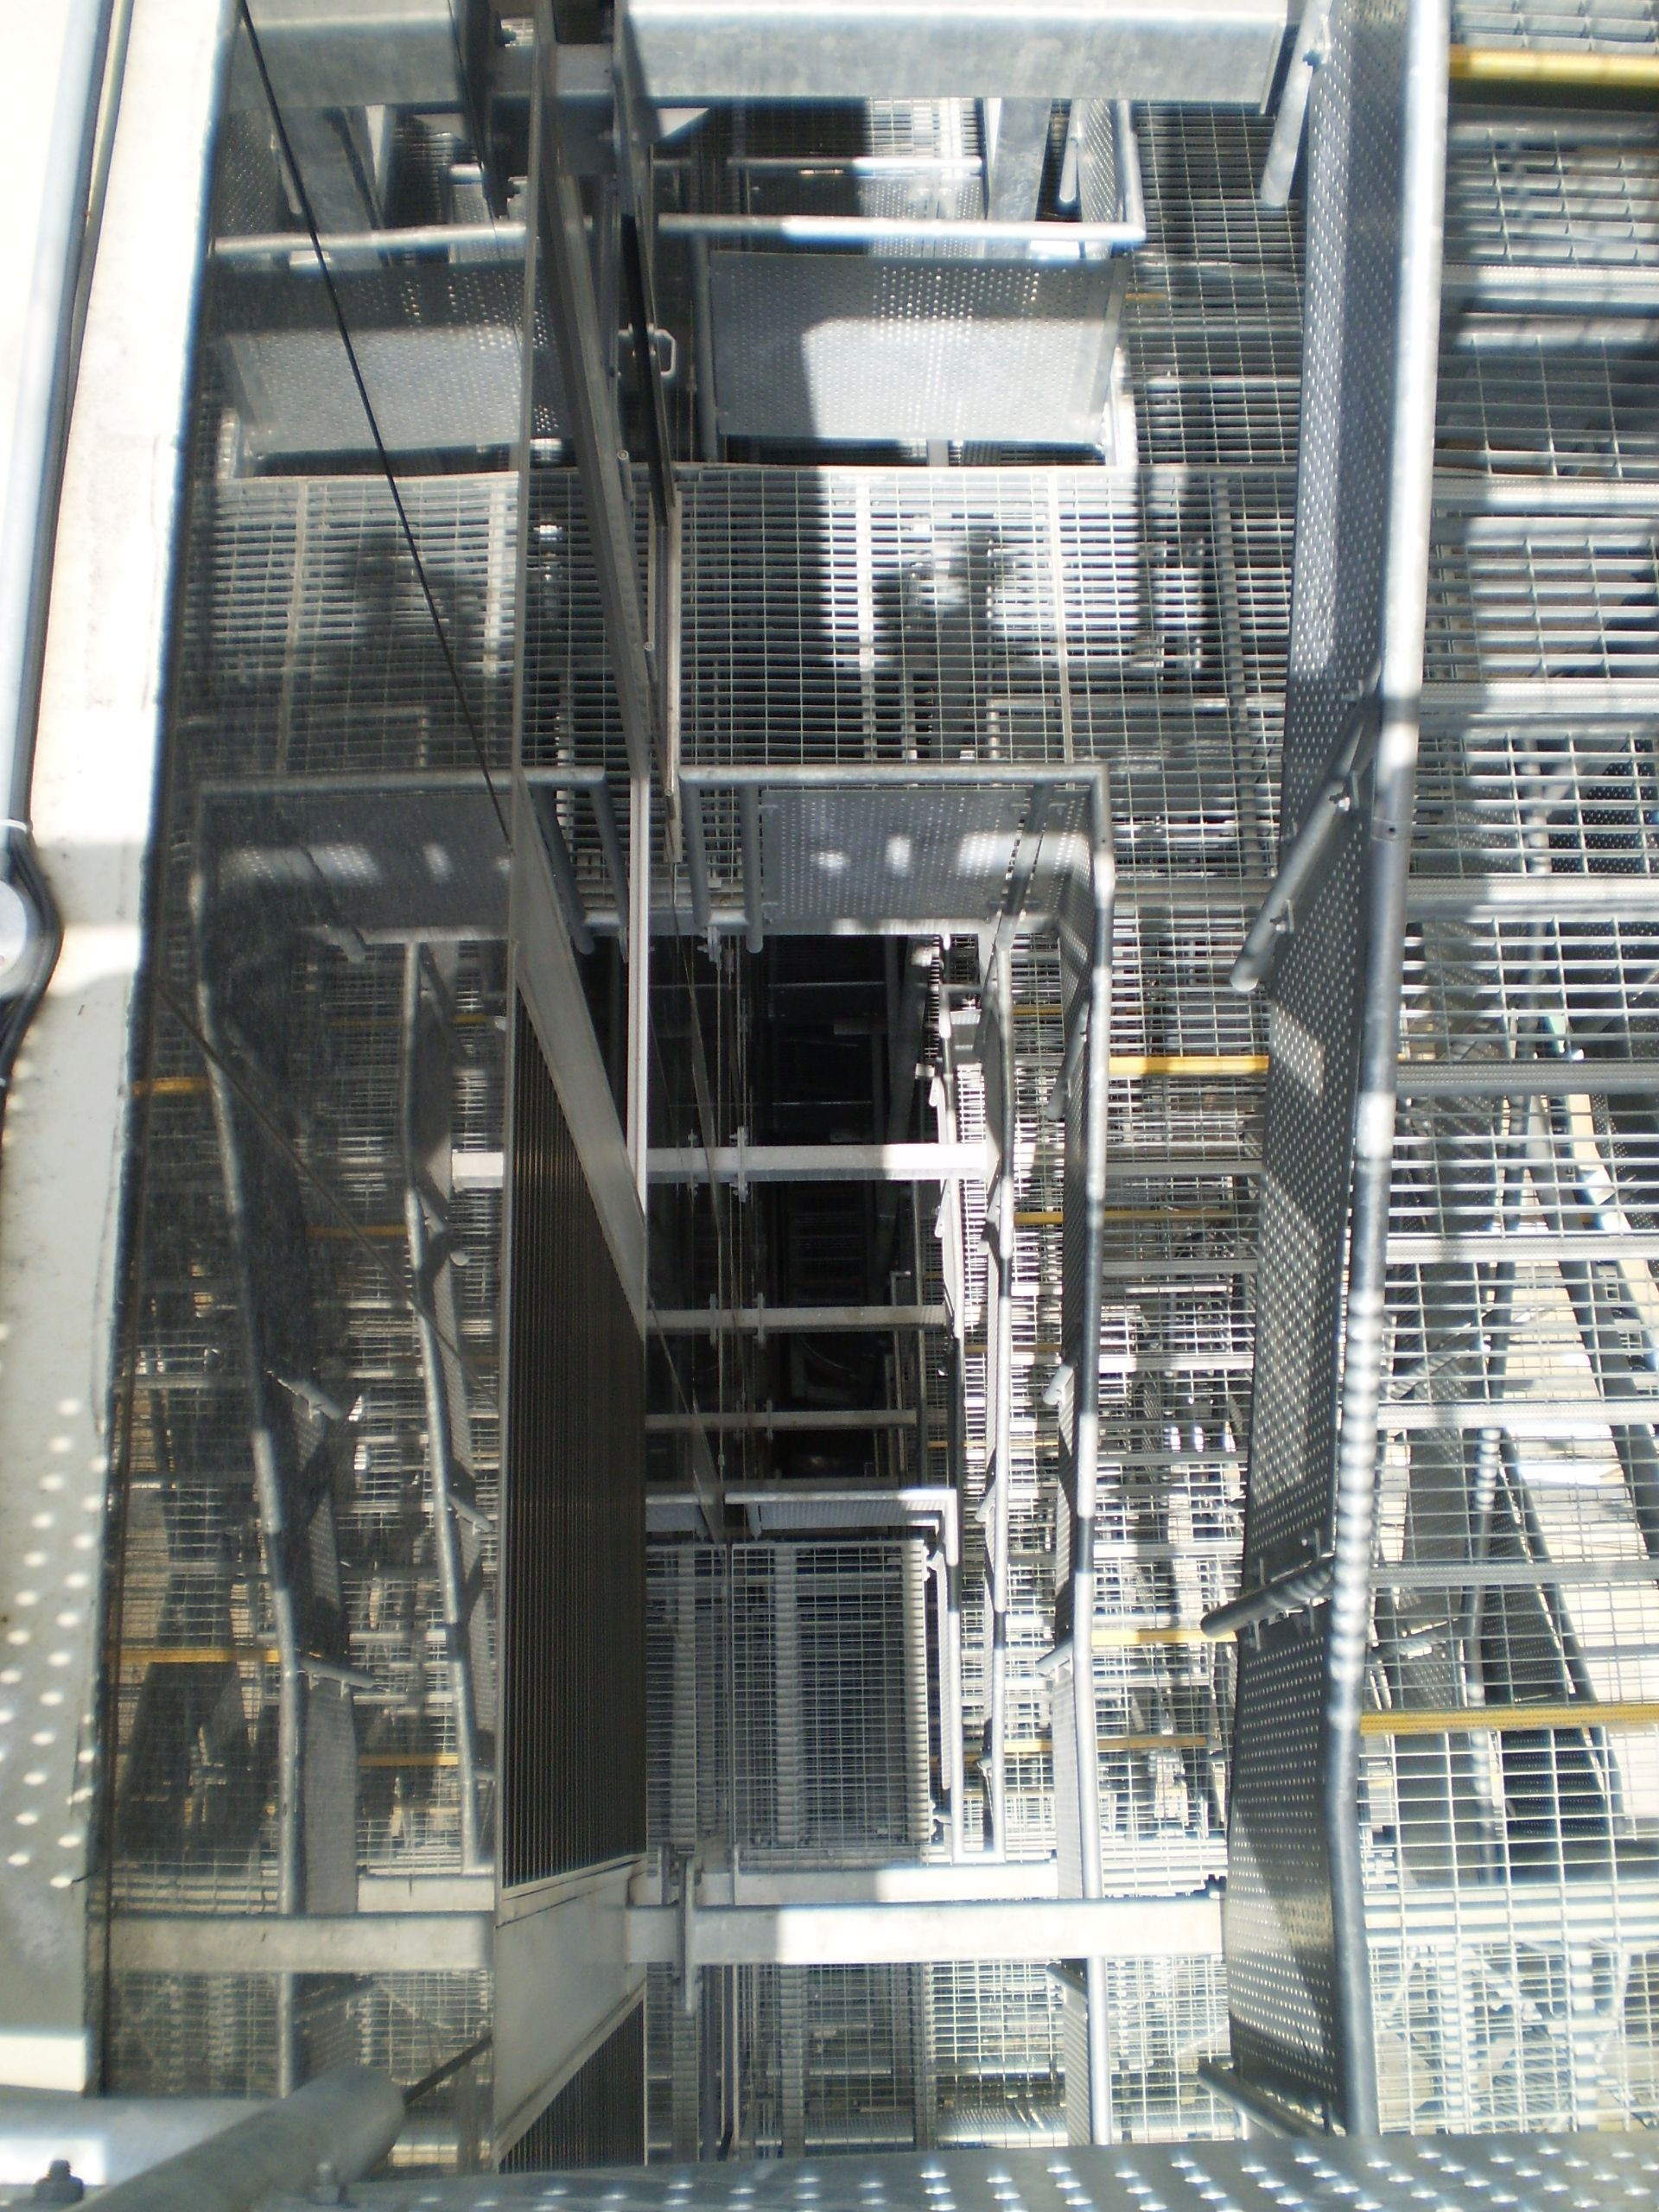 Best Removed Old Fire Escape And Added New 10 Flight Steel Fire 400 x 300